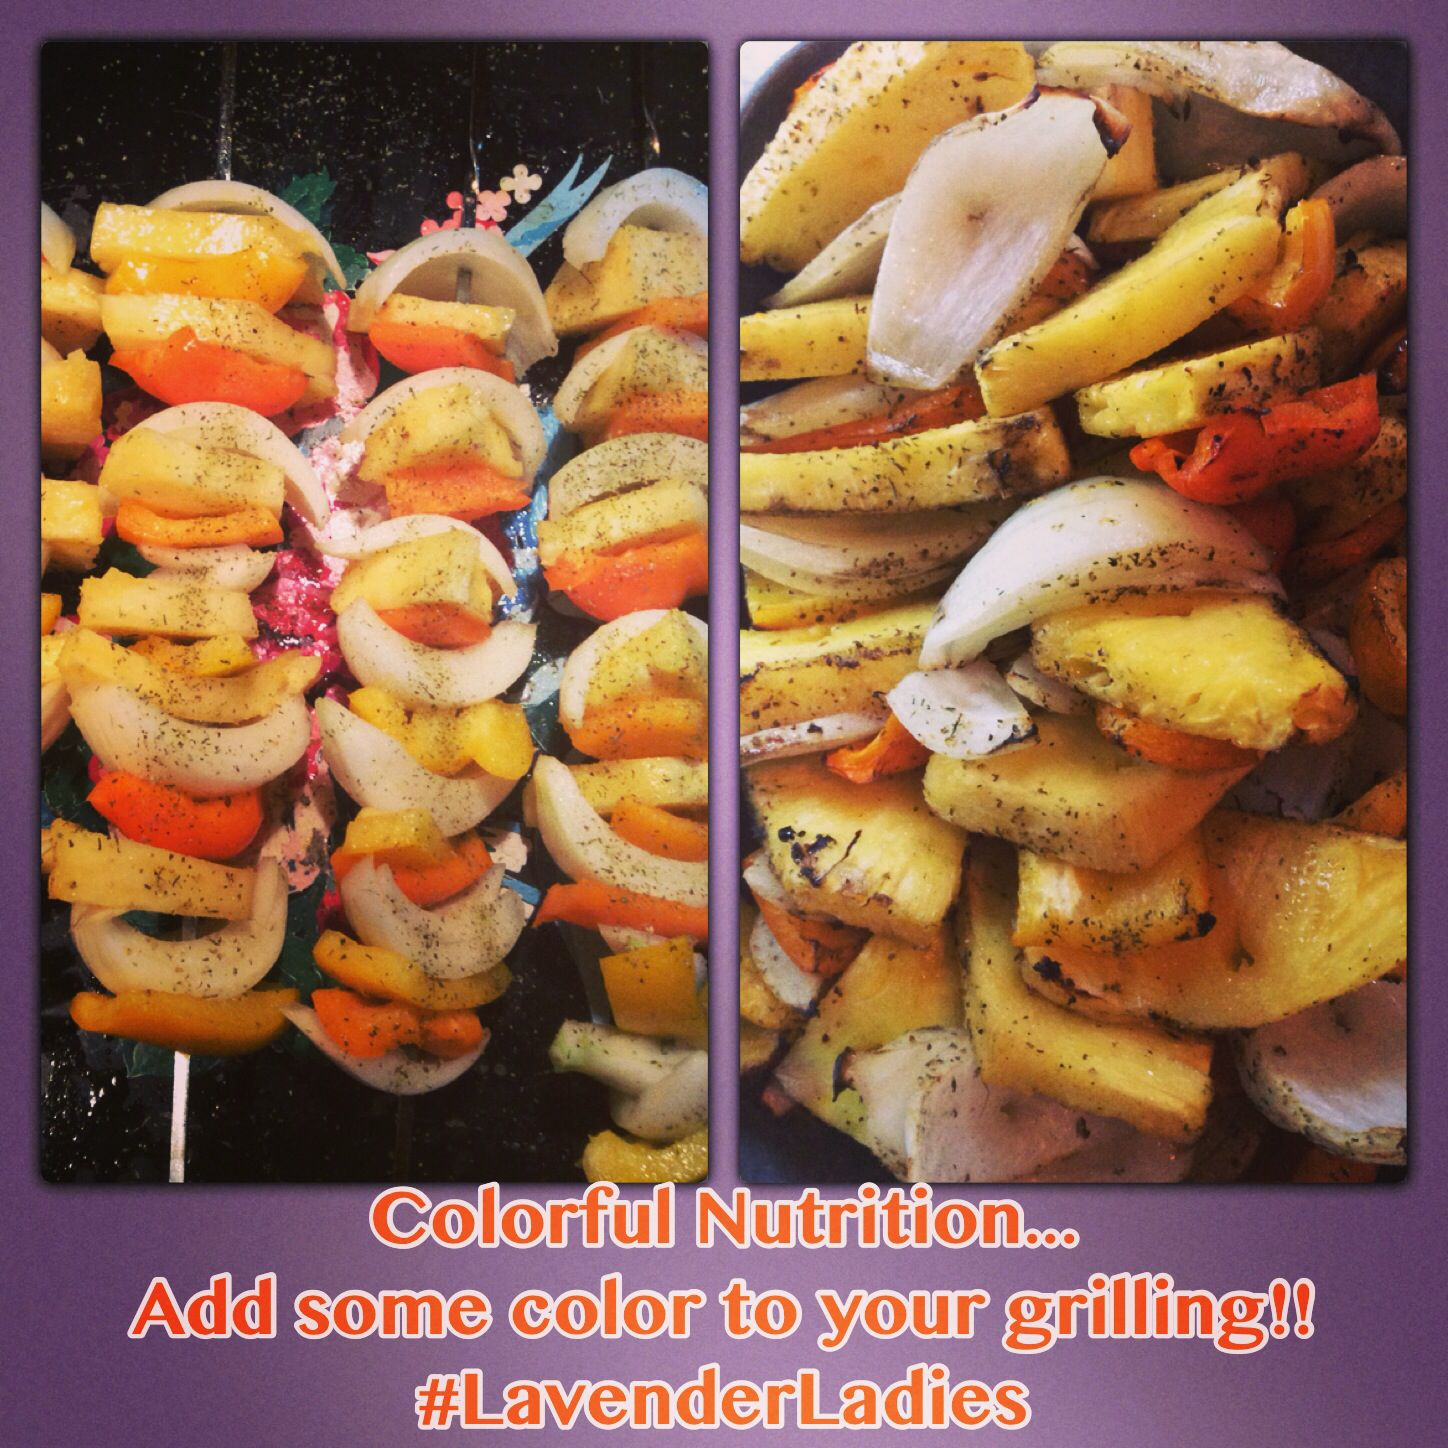 Colorful Nutrition! Adding color to grilling is DELICIOUS!! #colorfulnutrition #grilling #barbecue #kabobs #pineapple #onions #peppers #organic #vegan #lavenderladies #healthy #health #fitness #vitamins #delicious